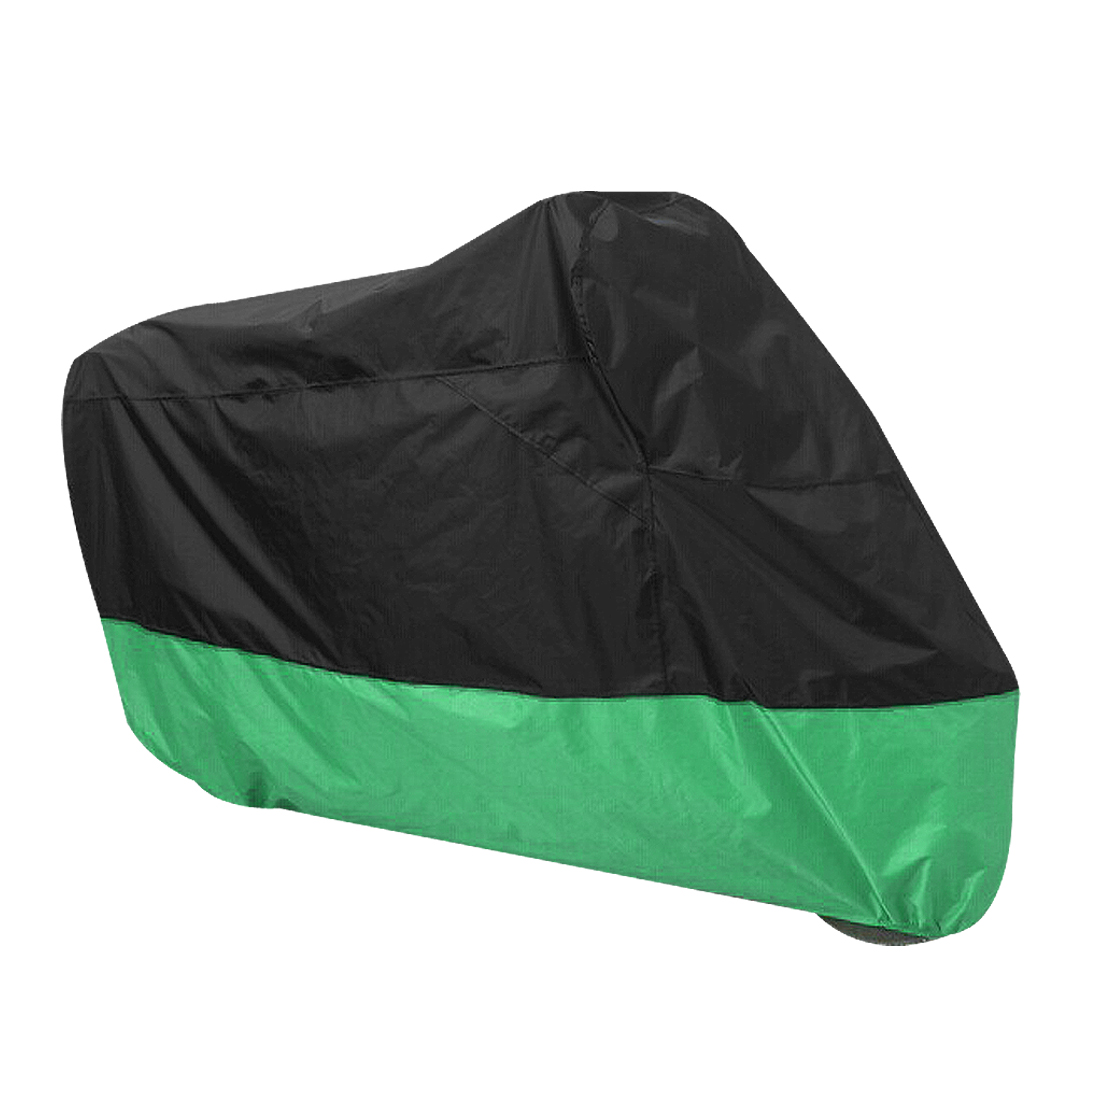 Green Black Waterproof Outdoor Motorcycle Scooter Protective Cover 265cm Long